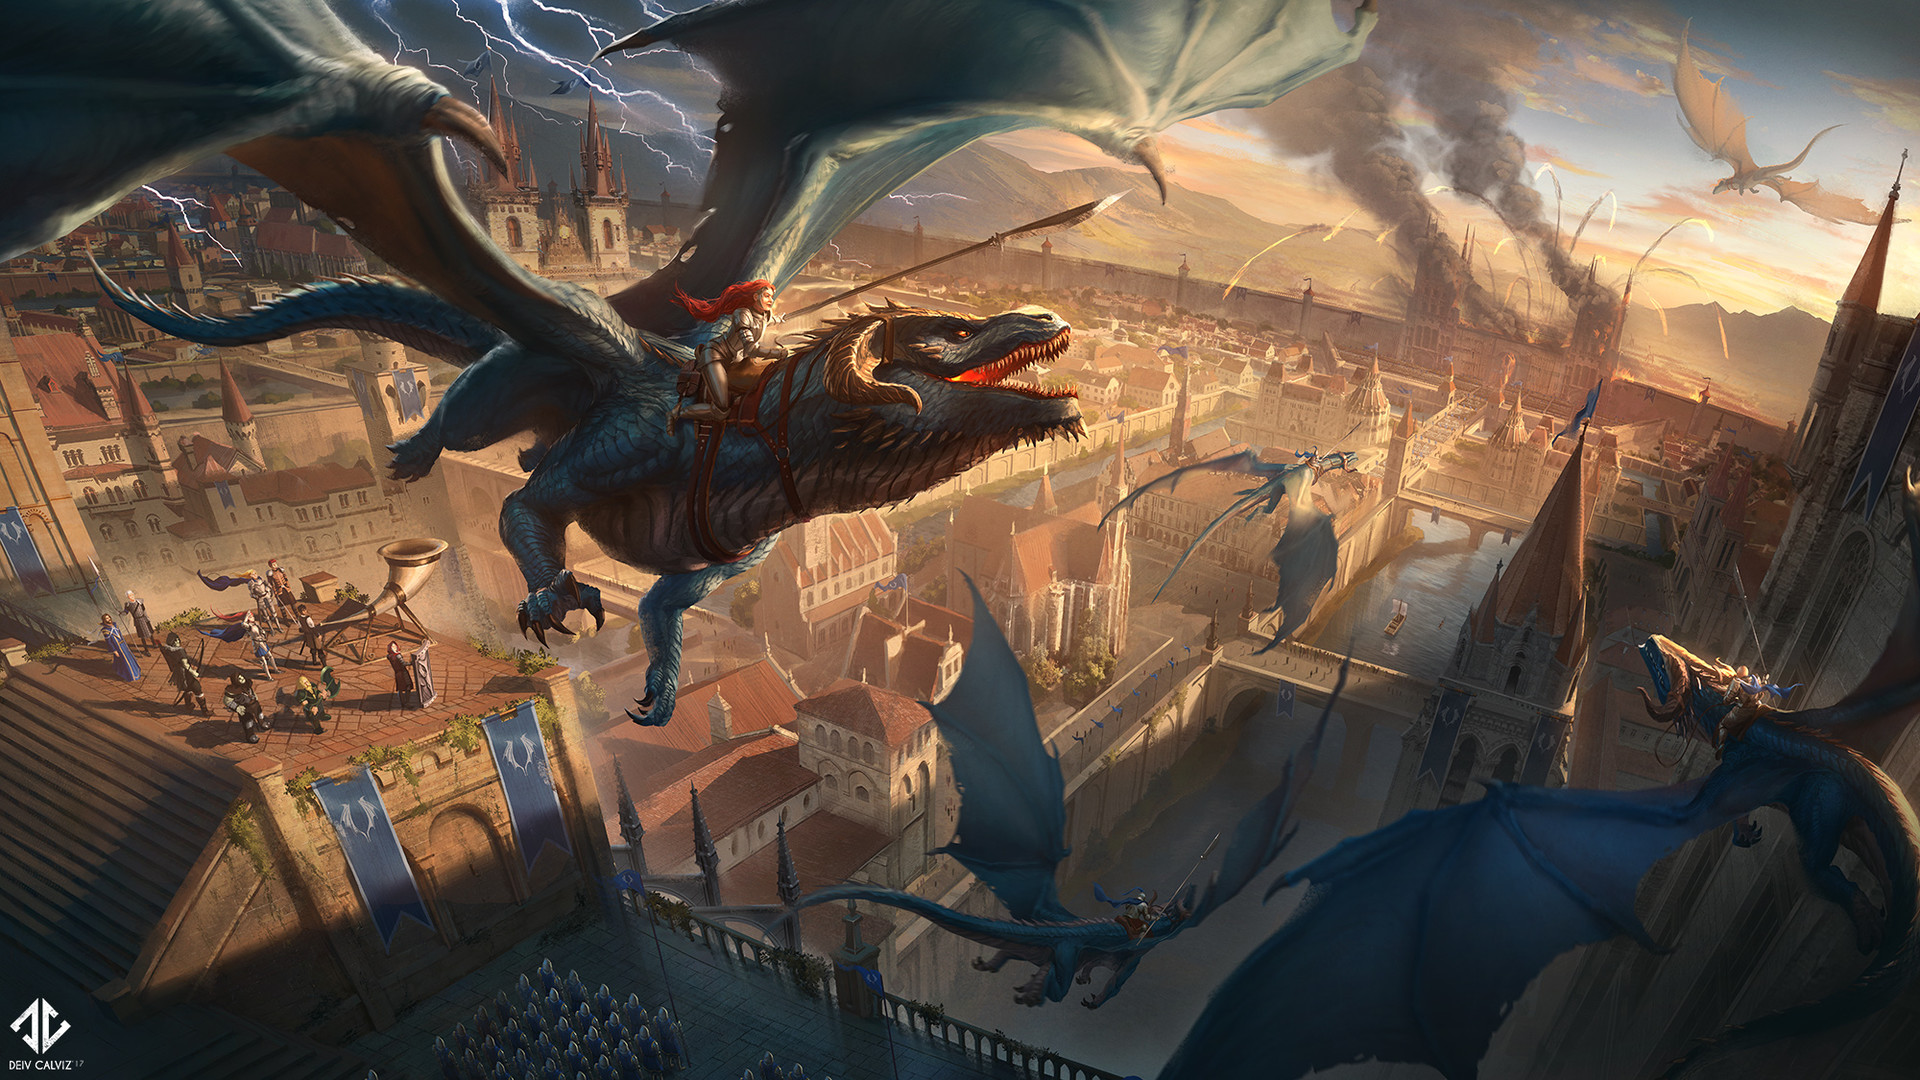 Artstation - Dragon Rider Battle Deiv Calviz David Villegas